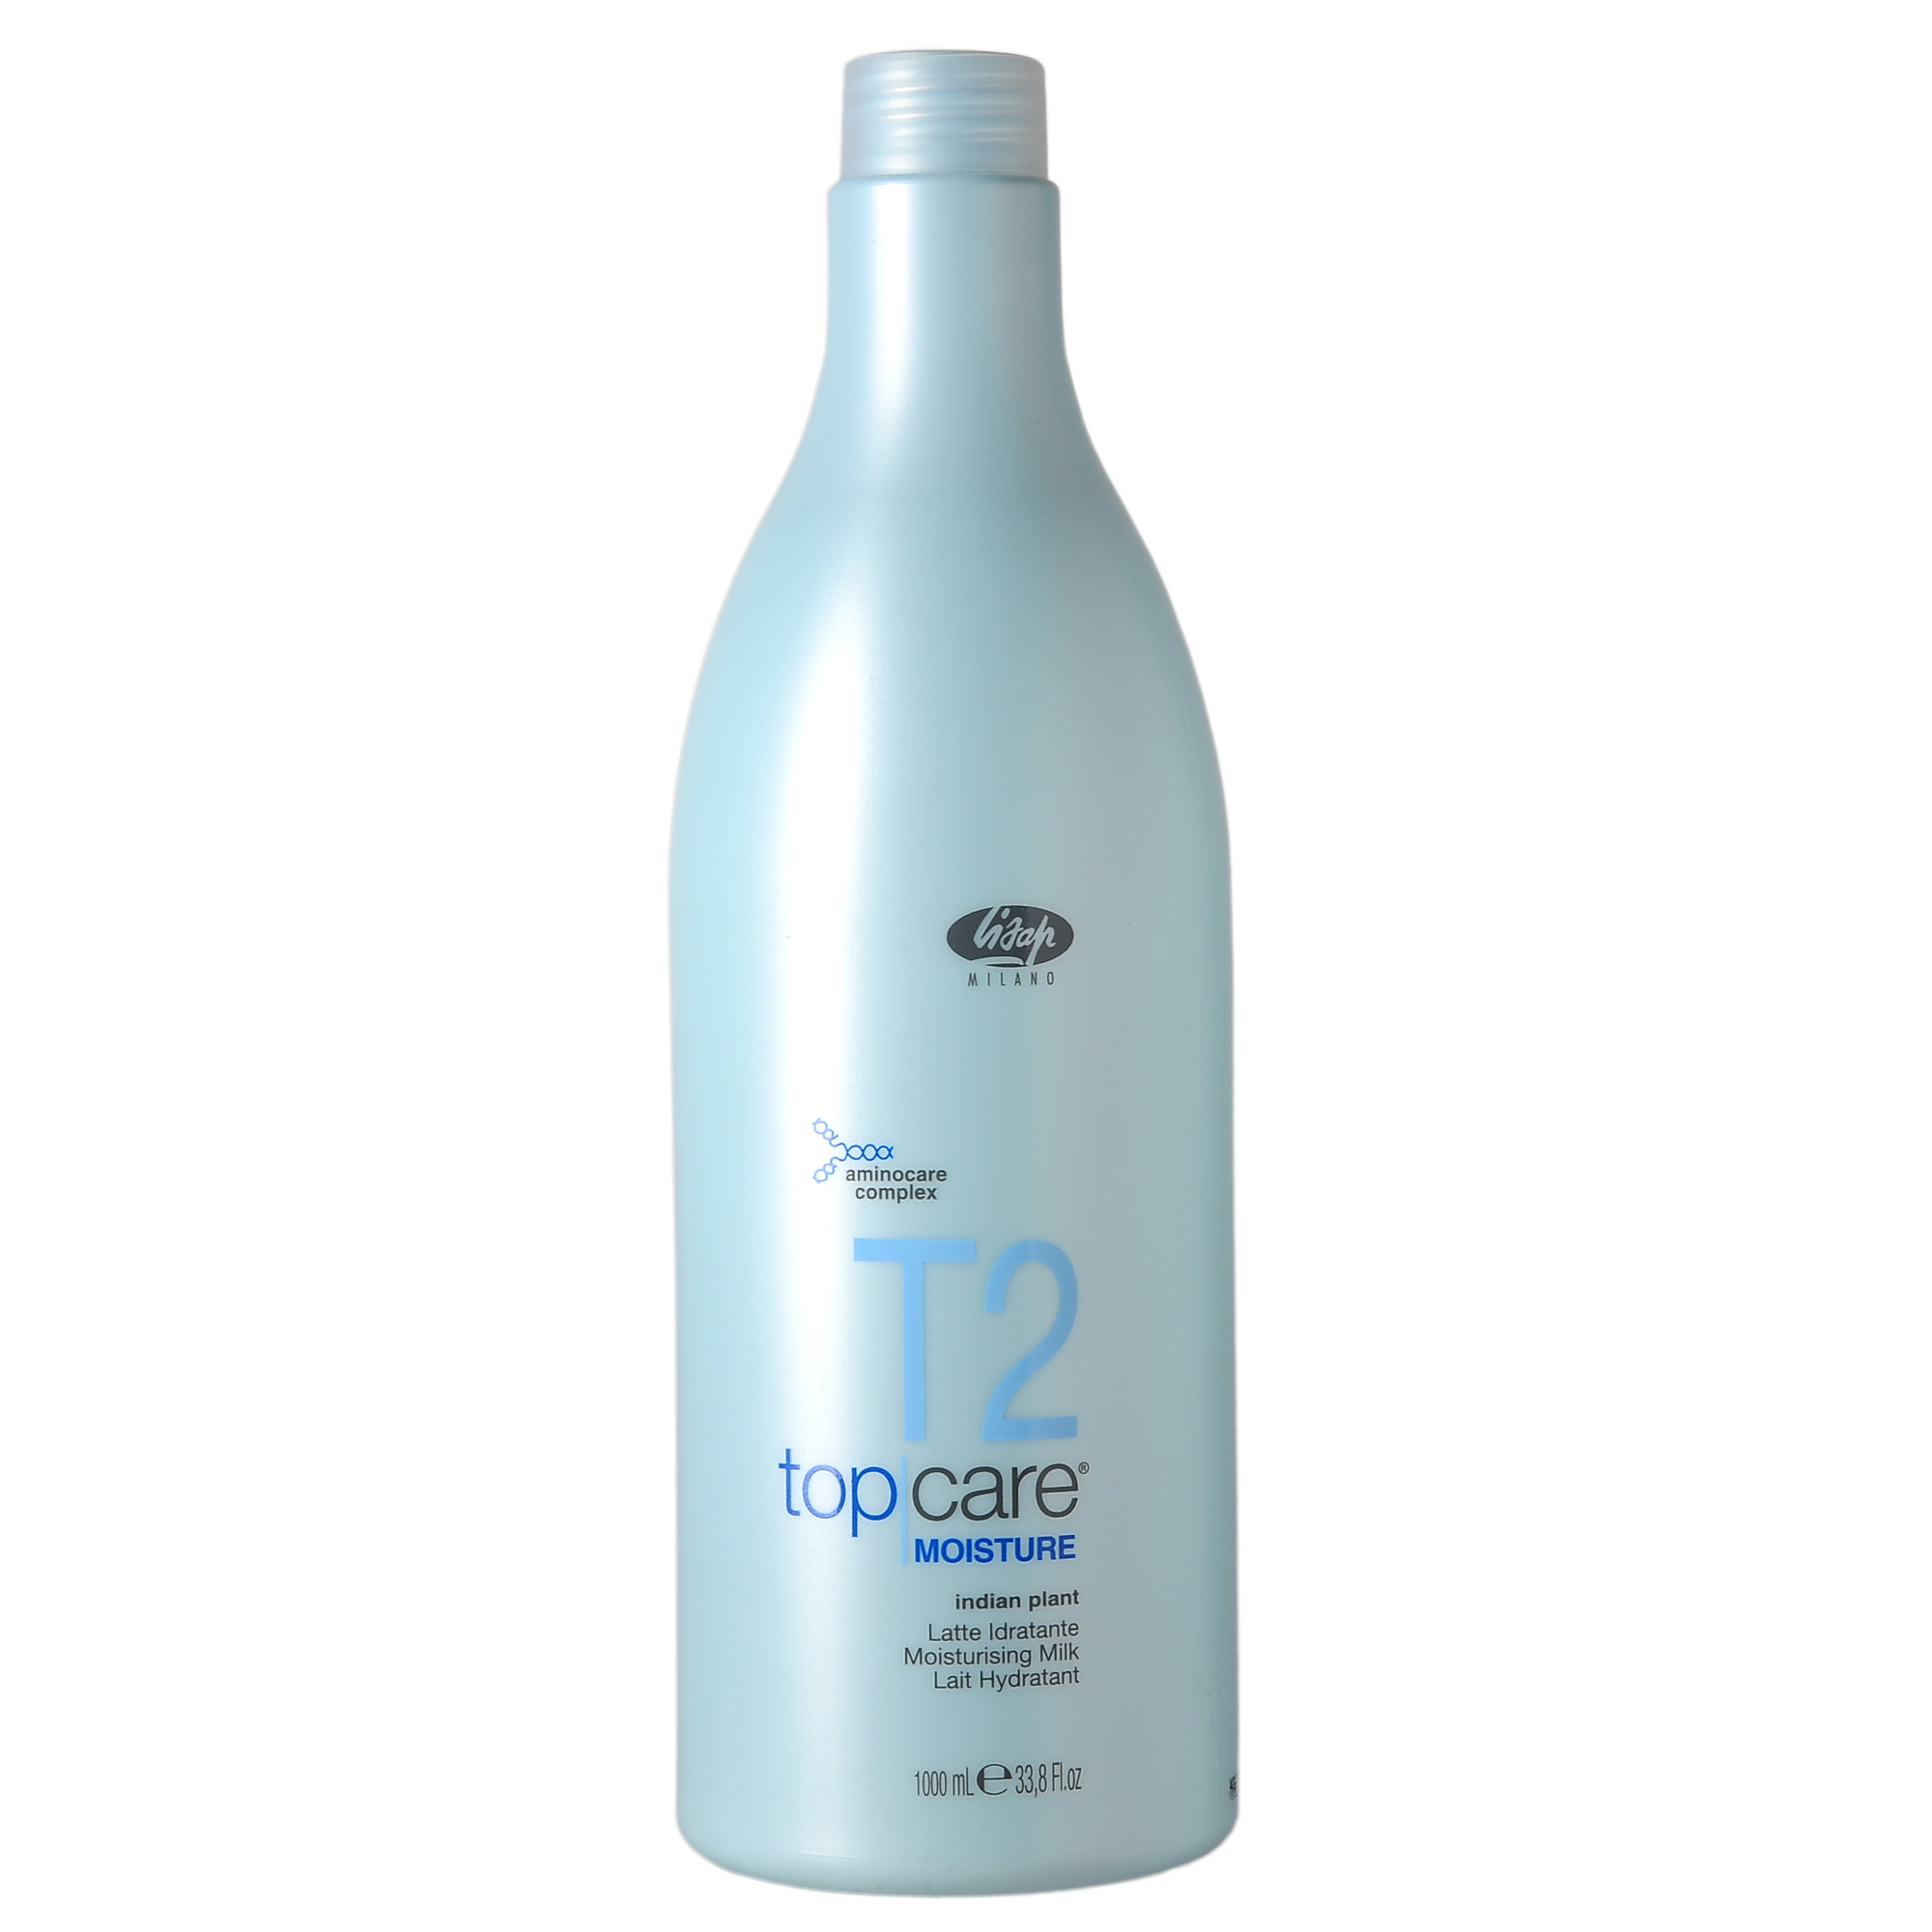 LISAP MILANO ����-������� ����������� ��� ���������� � ����� ����� / TOP CARE MOISTURE 1000��